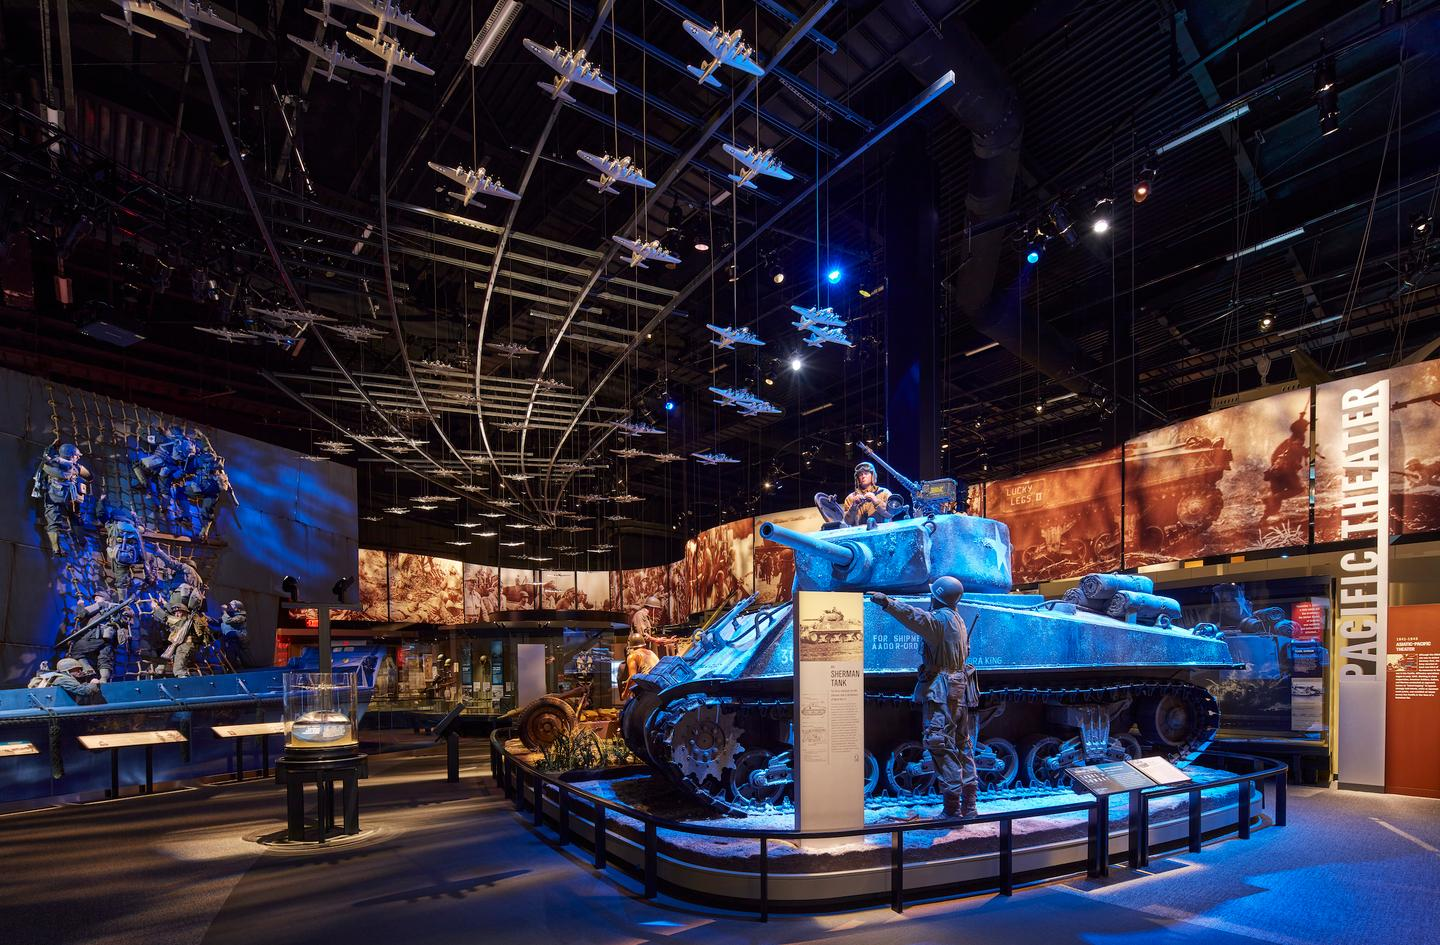 The National Museum of the United States Army includes several exhibits that aim to highlight the stories of individual soldiers